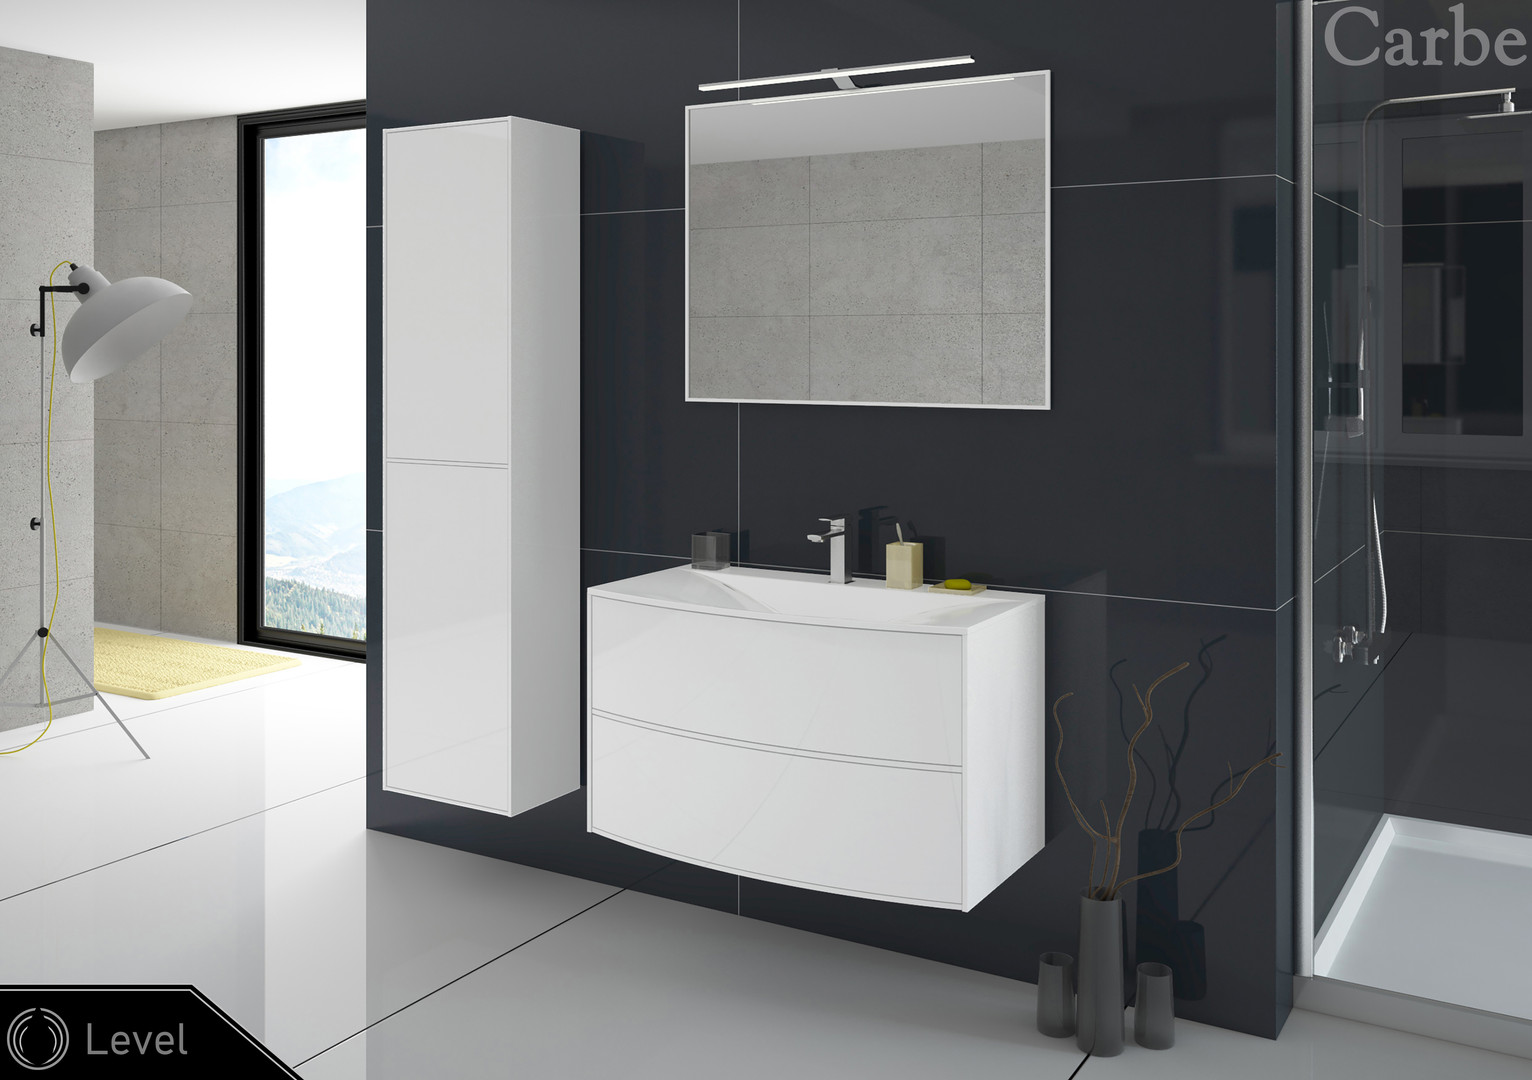 Level - Arctic White HG, Dolmite Washbasin, Soft Closing, Push To Open